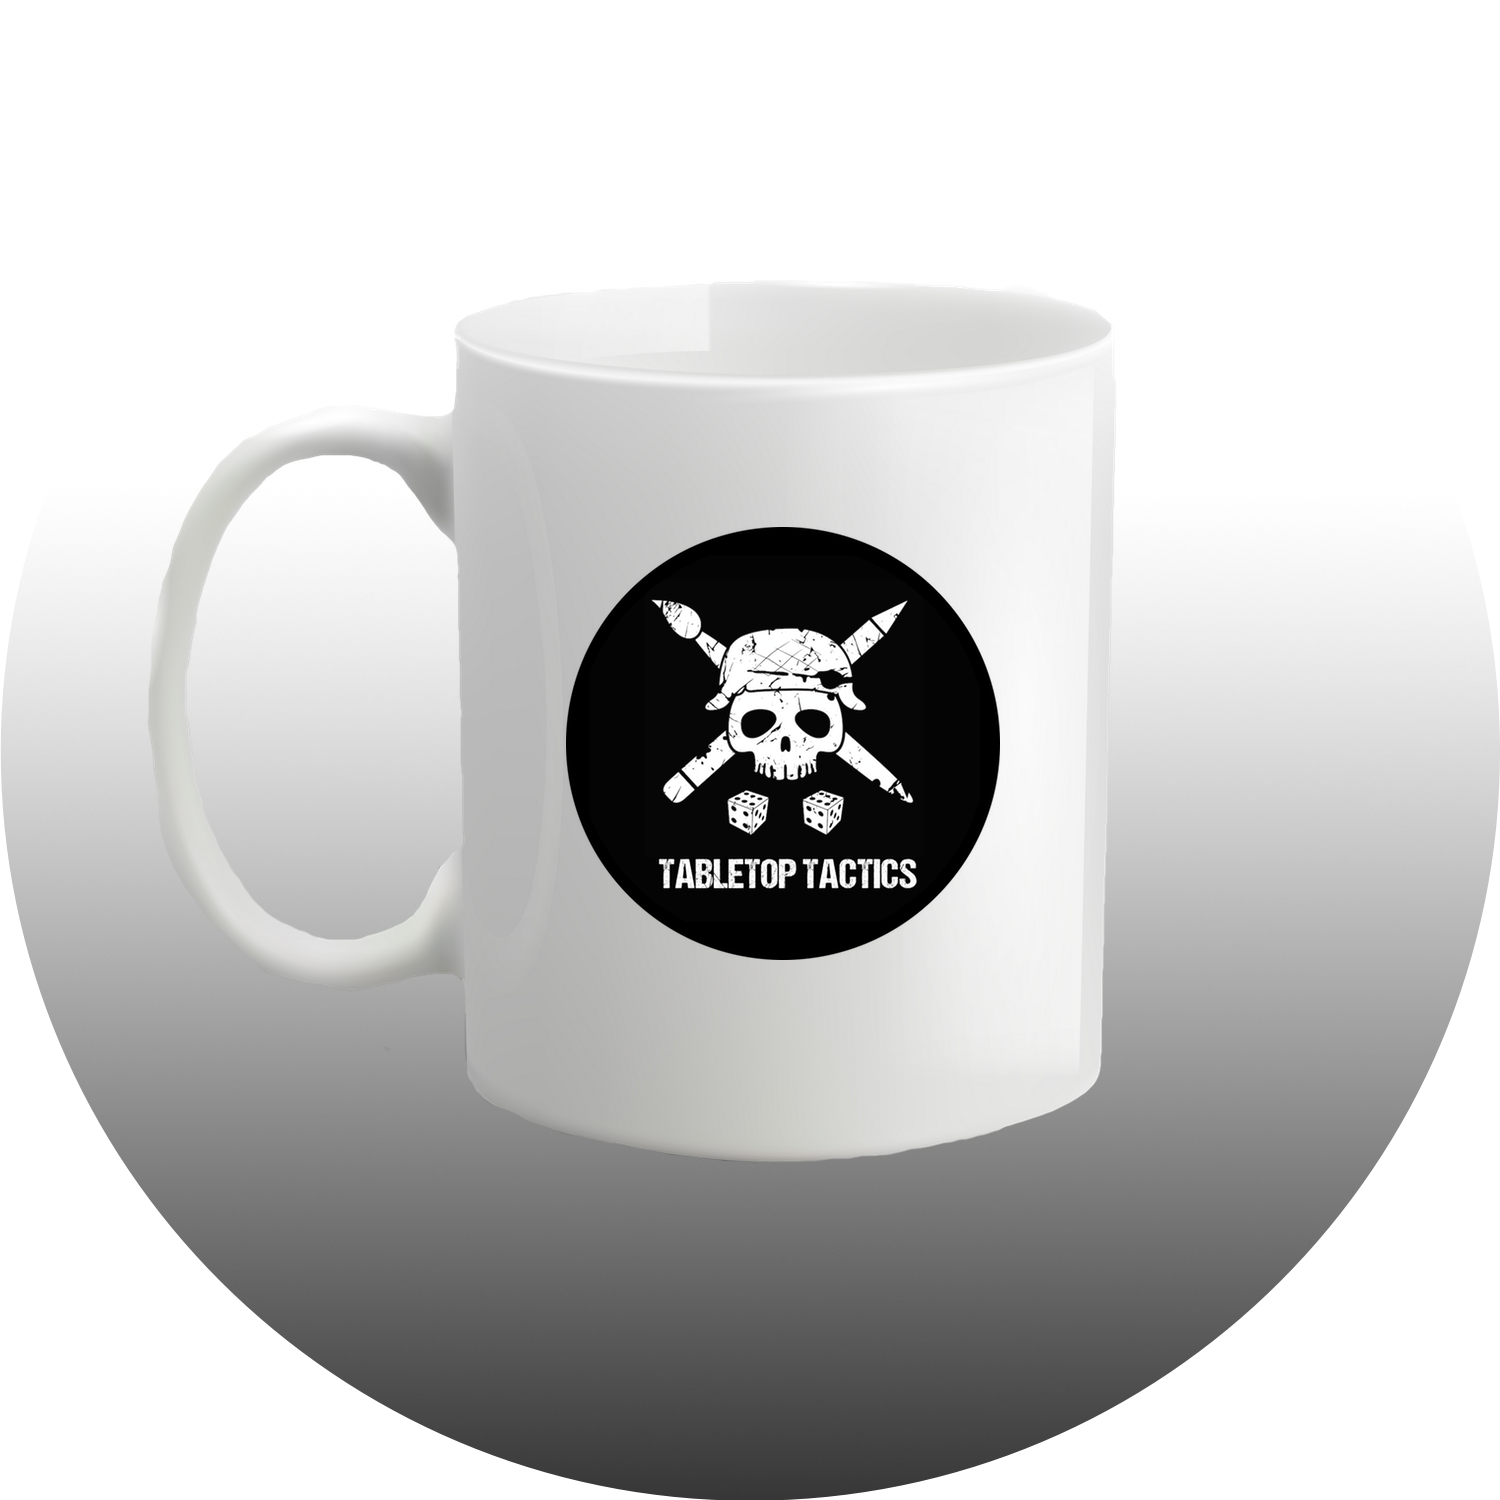 Tabletop Tactics Mugs